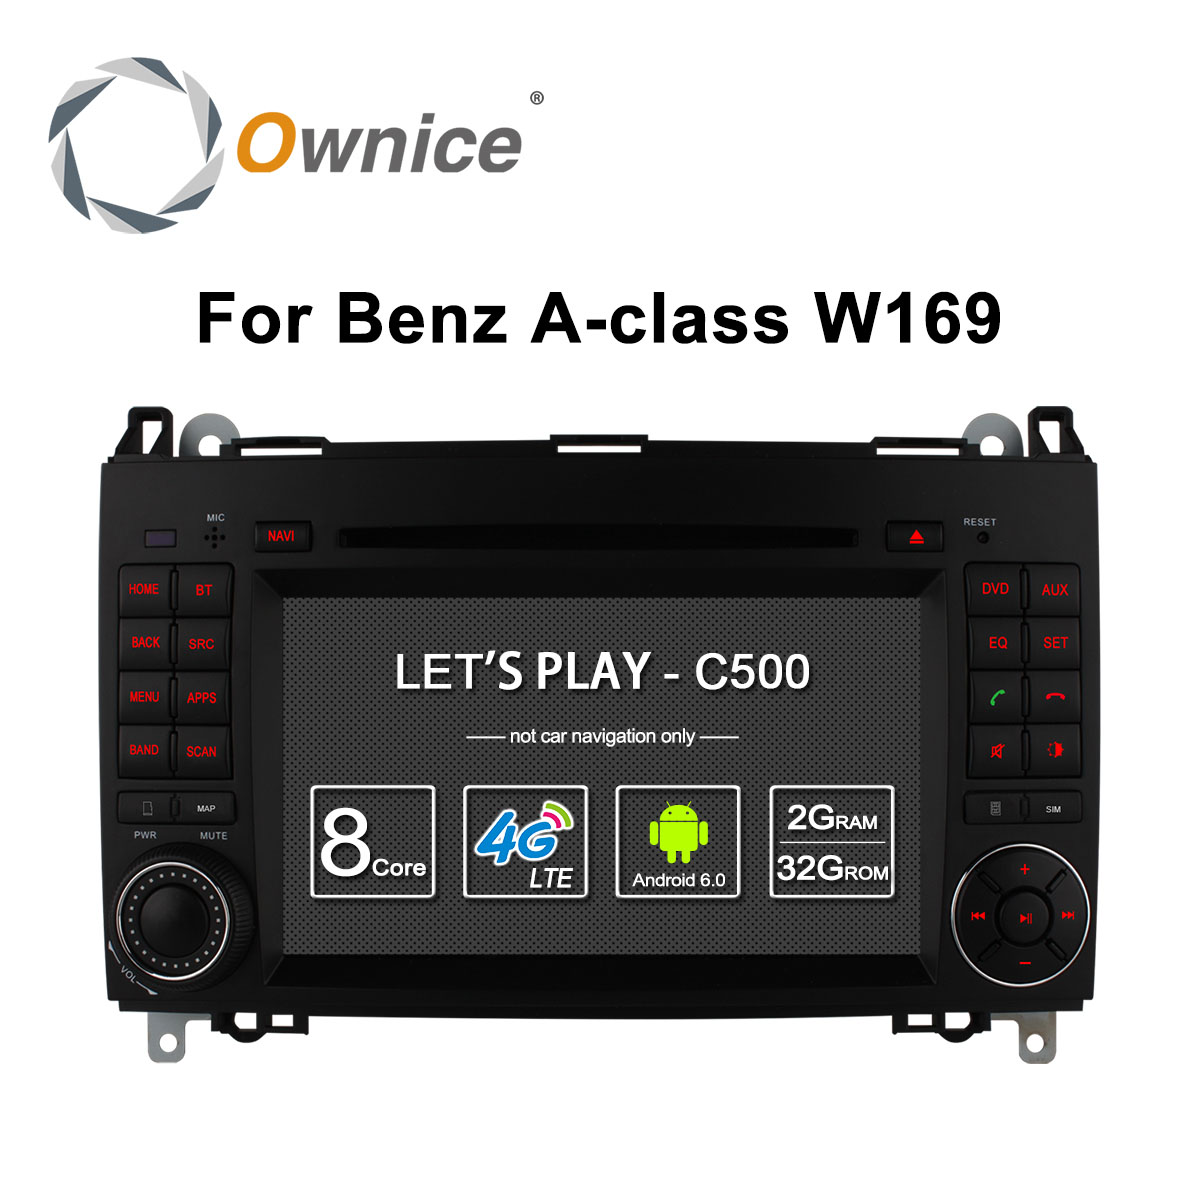 Ownice 4G SIM LTE Android6.0 8 Core 32G ROM Car DVD GPS Navi For <font><b>Mercedes</b></font> A-class <font><b>W169</b></font> Sprinter W209 Crafter Viano Vito LT3 W245 image